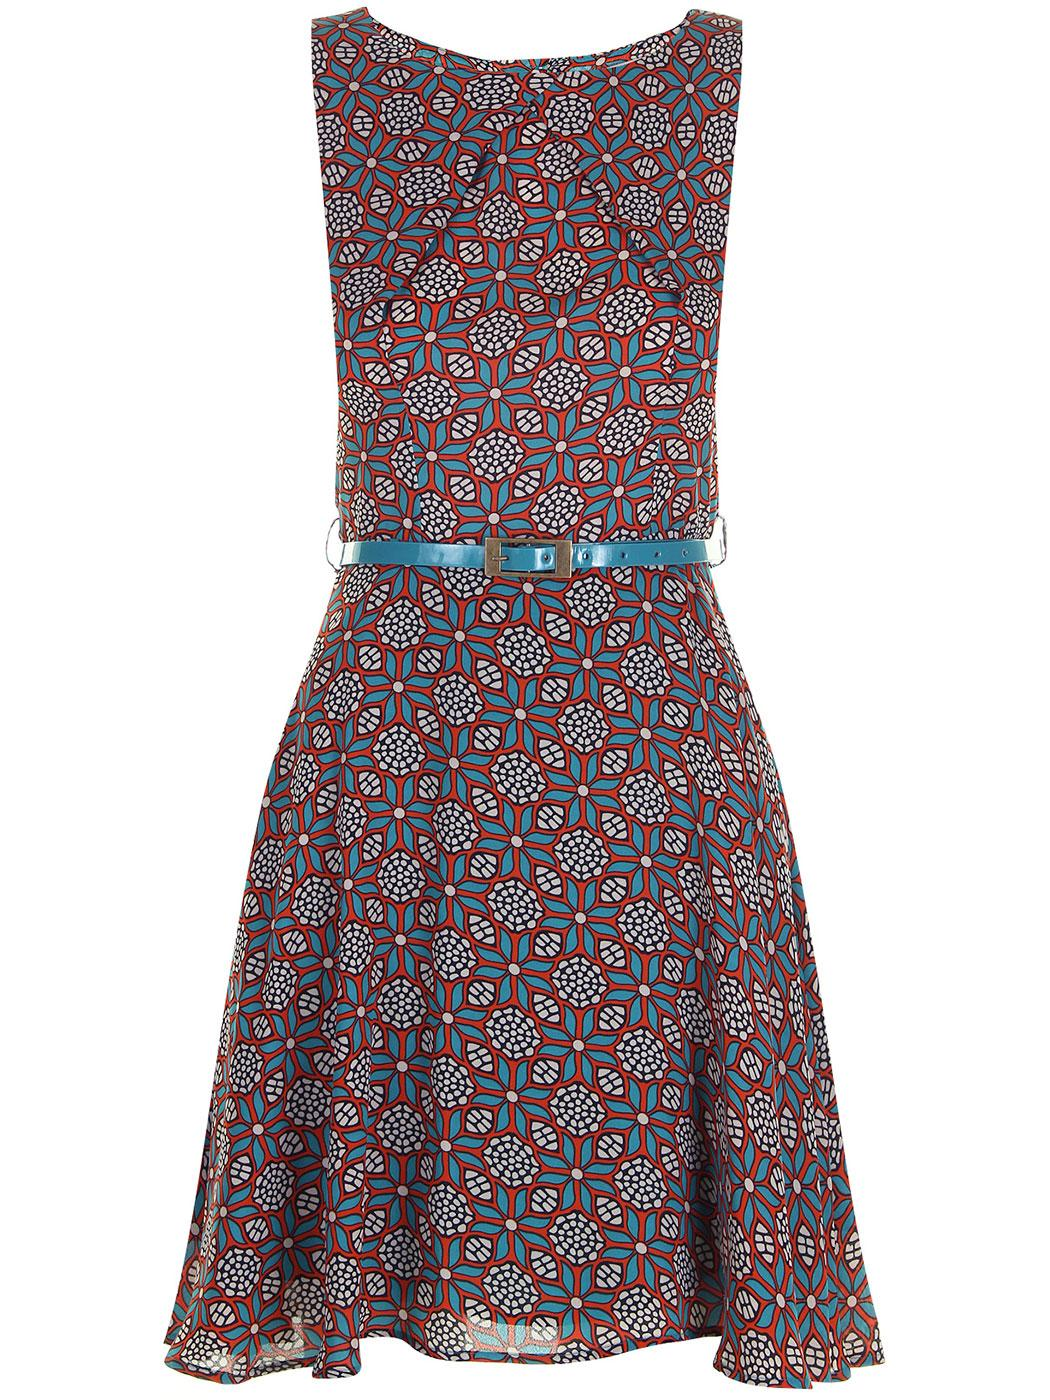 Rebecca DARLING Retro 60s Fit and Flare Dress